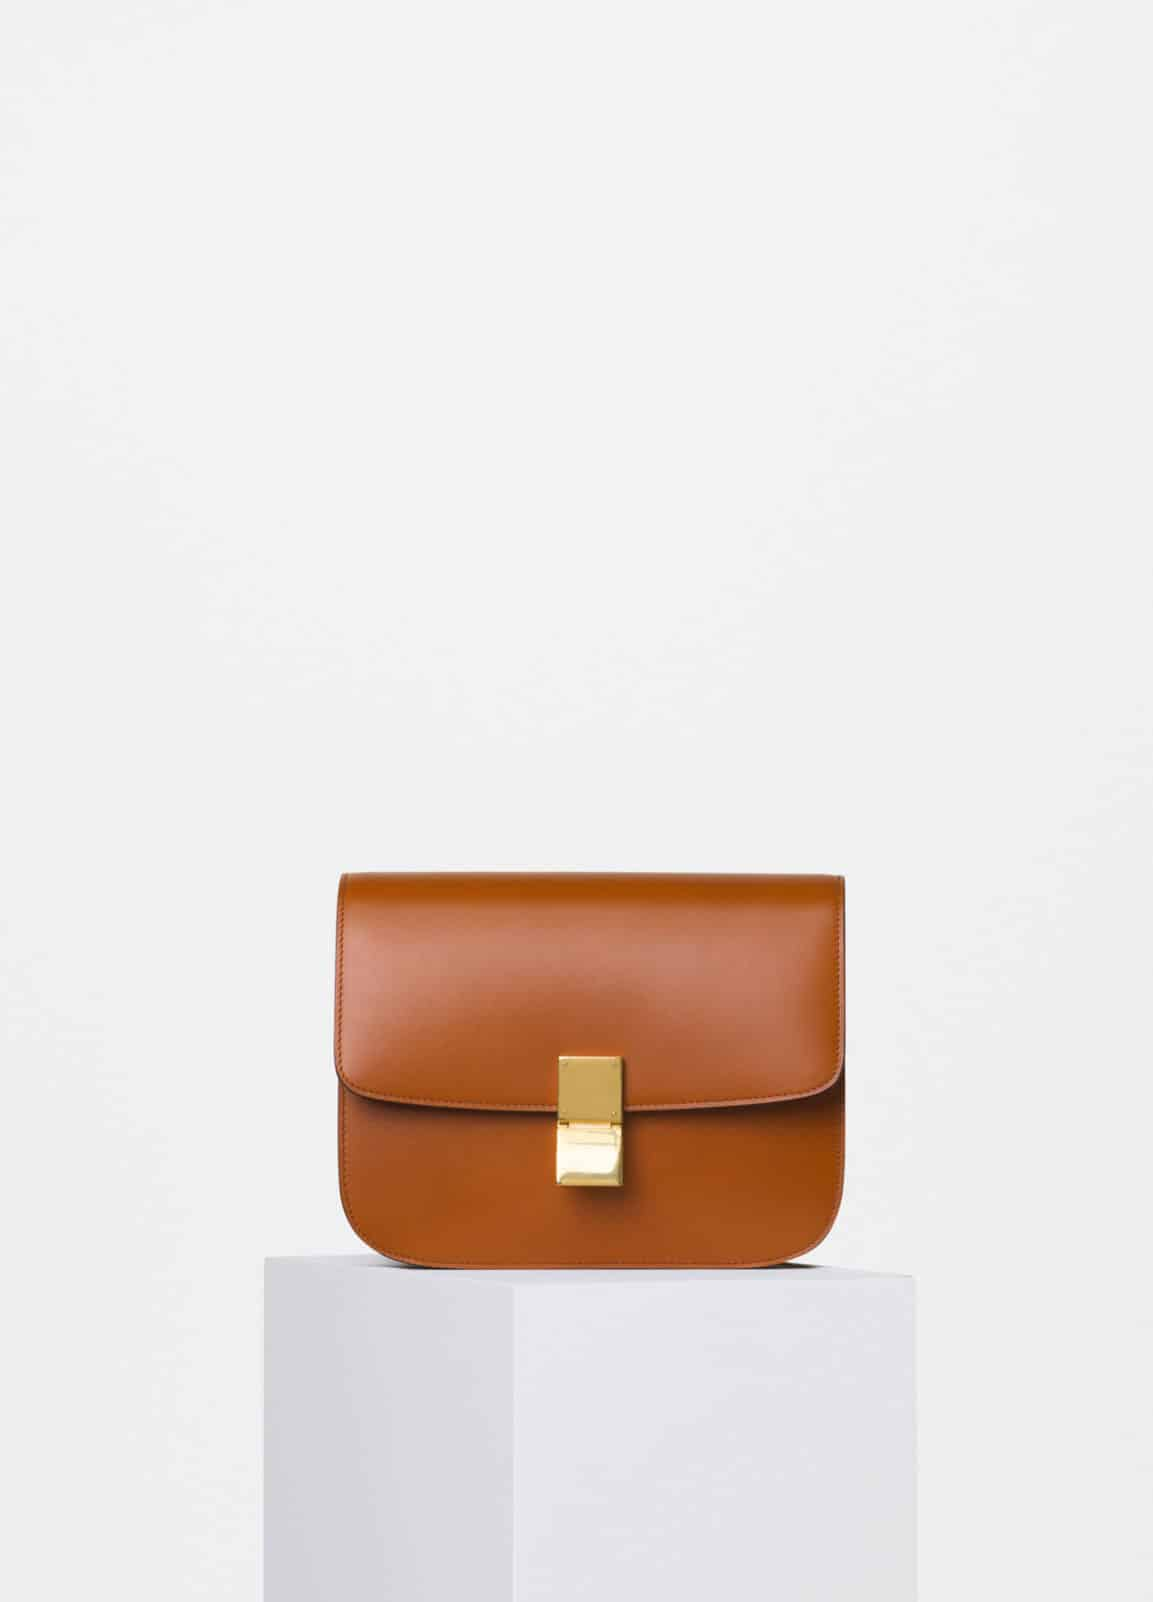 Celine Summer 2016 Bag Collection Featuring Pillow Bags ...